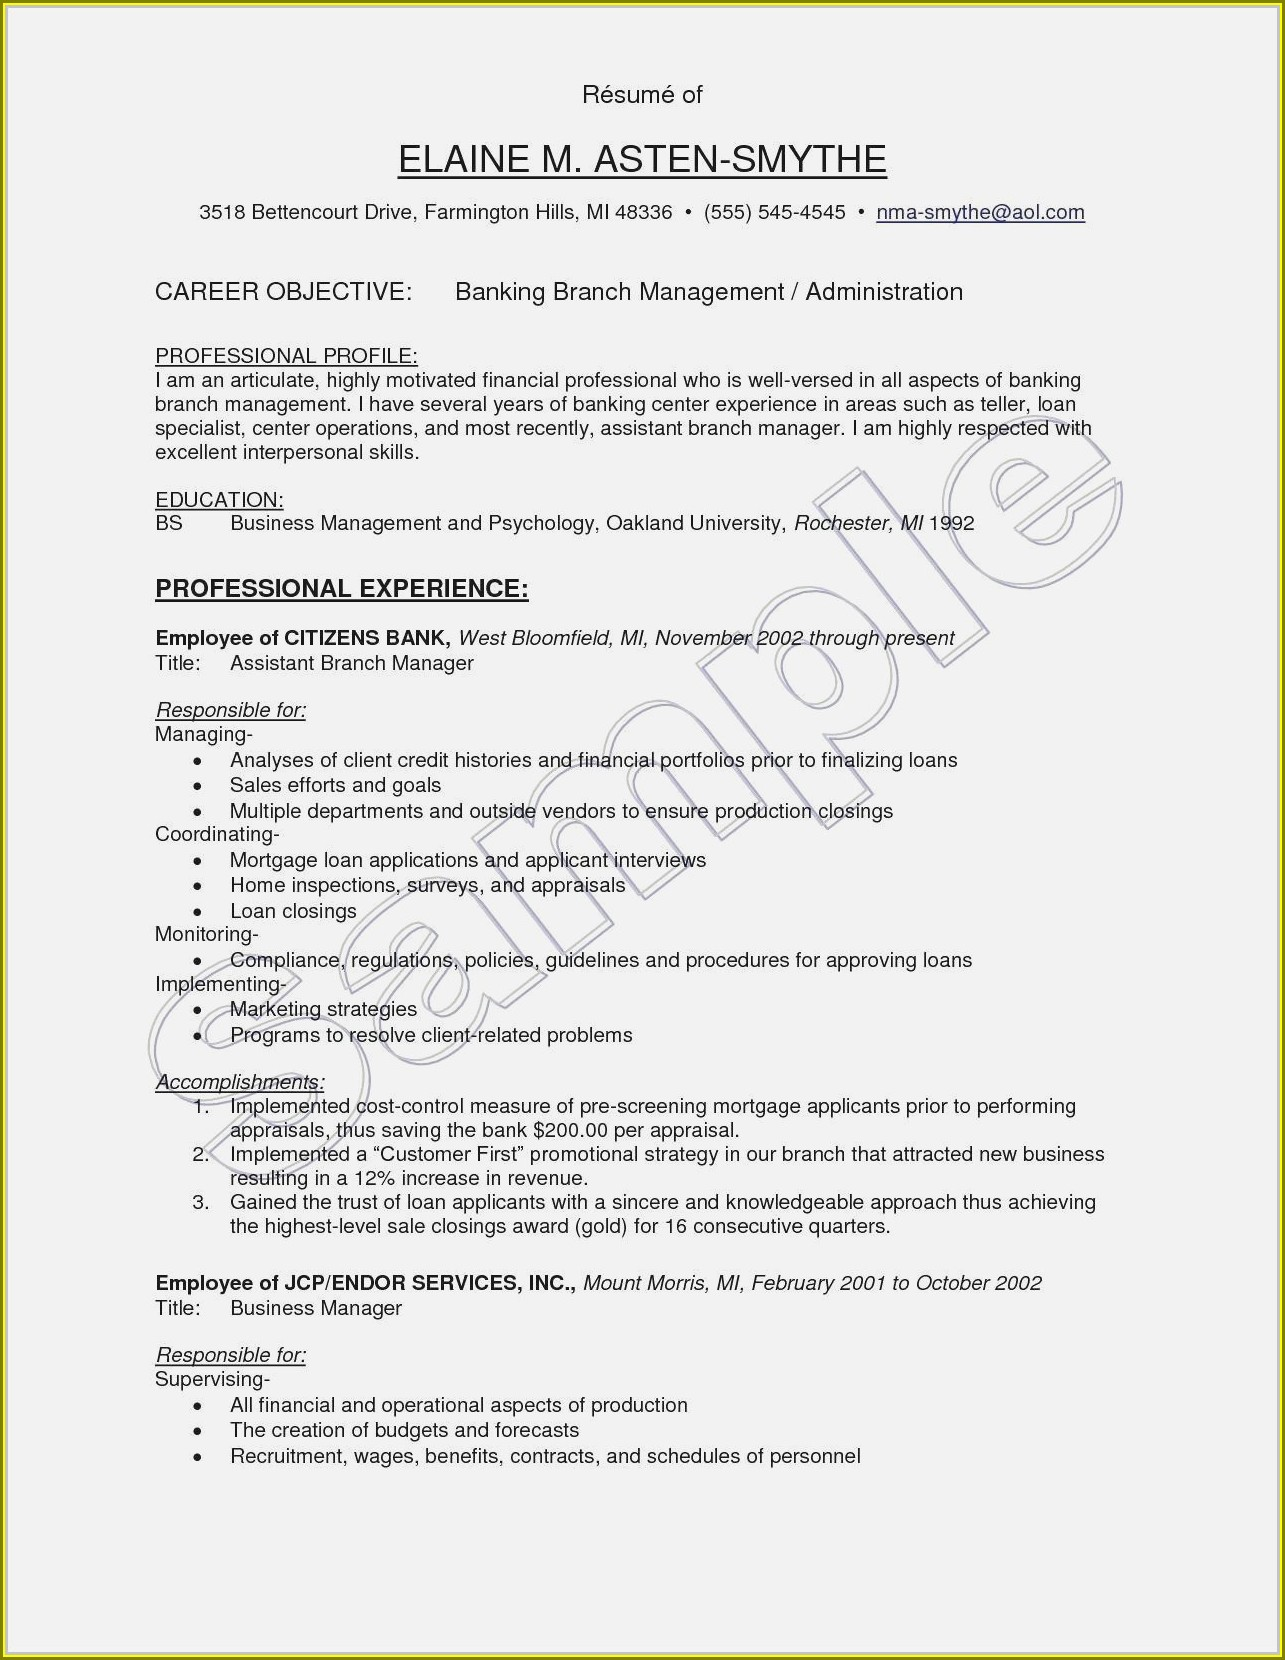 Resume Objective Samples For Experienced Professionals